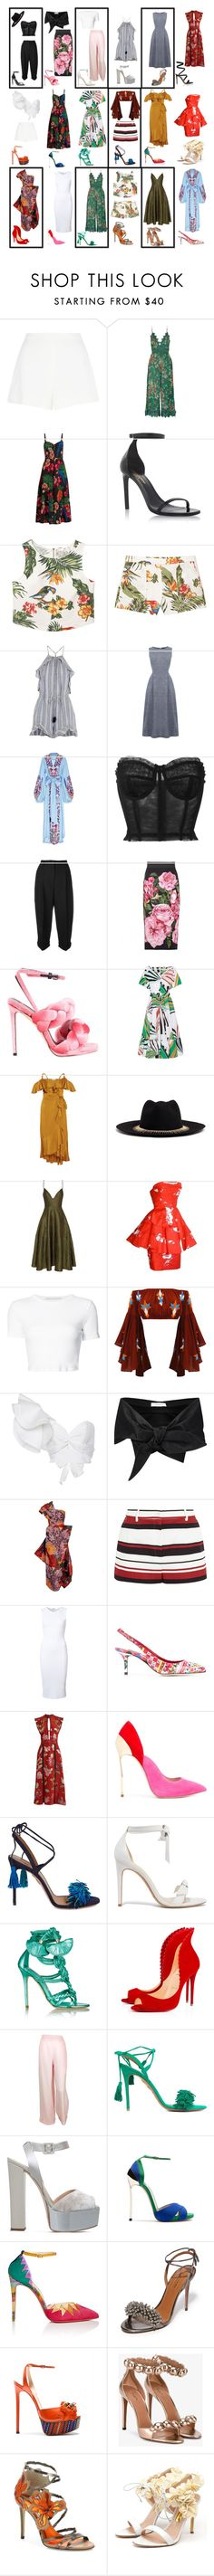 """Havana Vacation"" by k-zaldi ❤ liked on Polyvore featuring Giambattista Valli, Zimmermann, Valentino, Yves Saint Laurent, MANGO, Warehouse, Yuliya Magdych, Dolce&Gabbana, Marco de Vincenzo and Emilio Pucci"